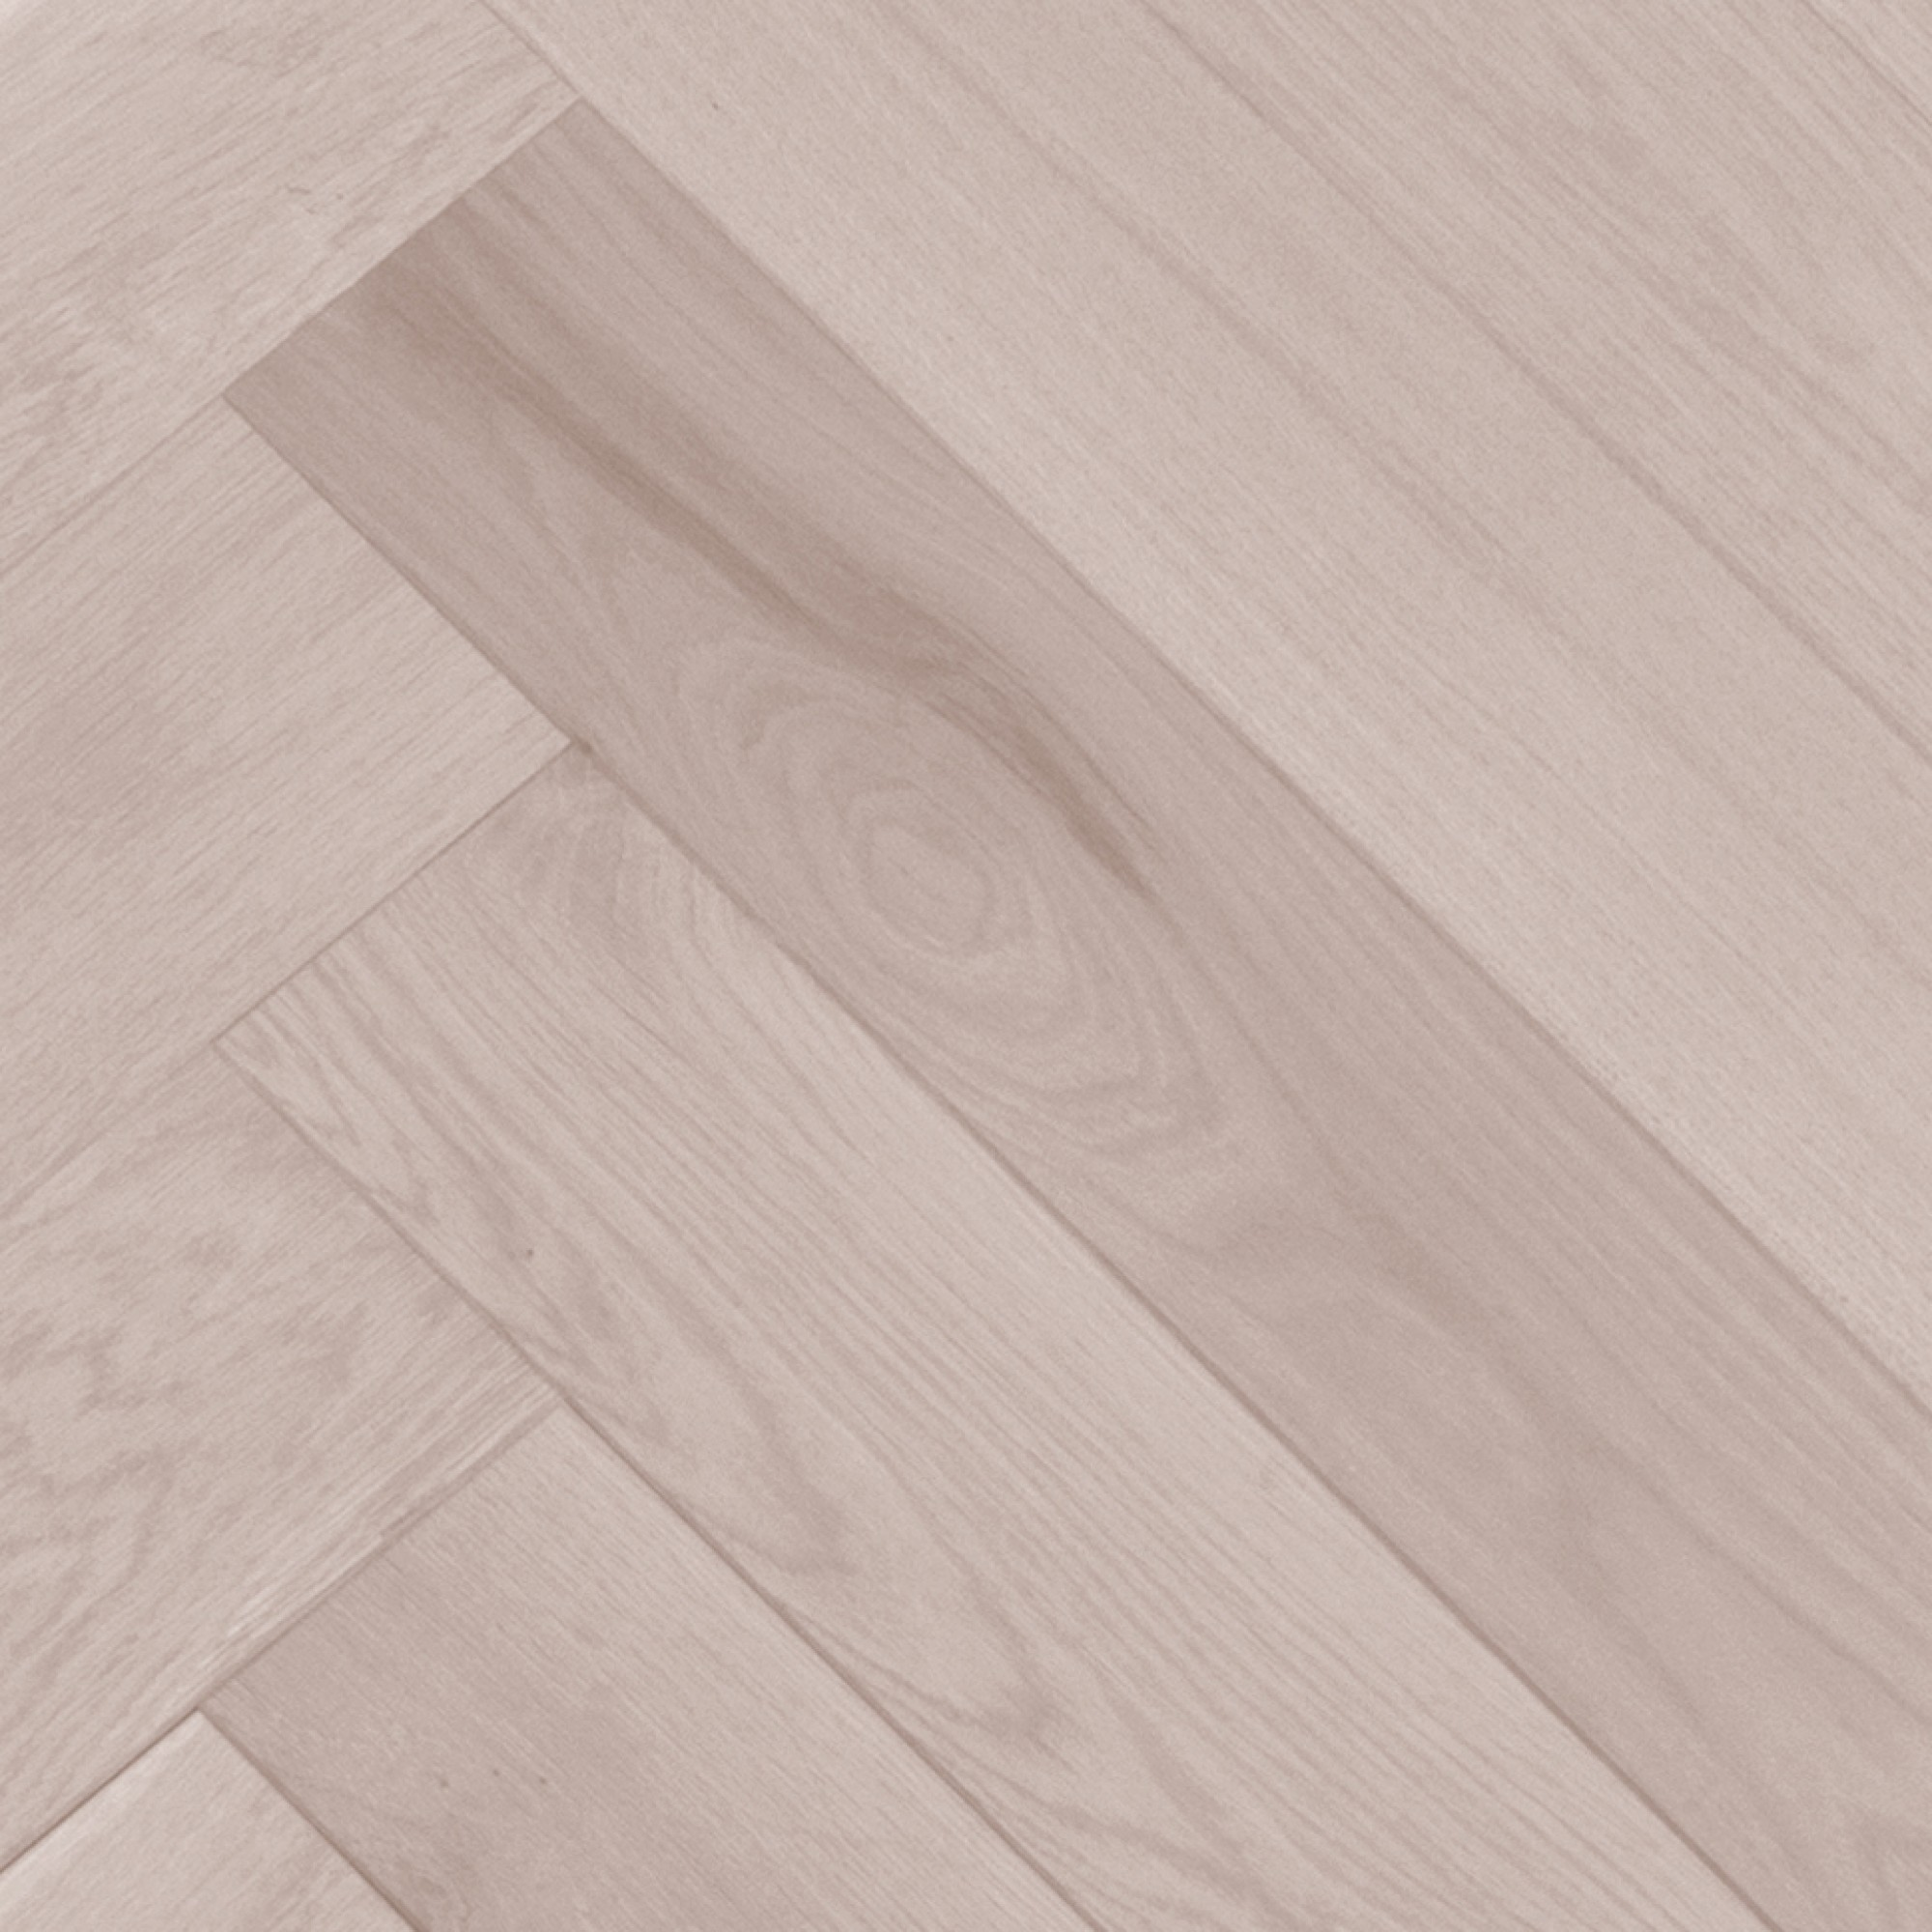 Herringbone White Oak Oracle Hand Scraped Vintage